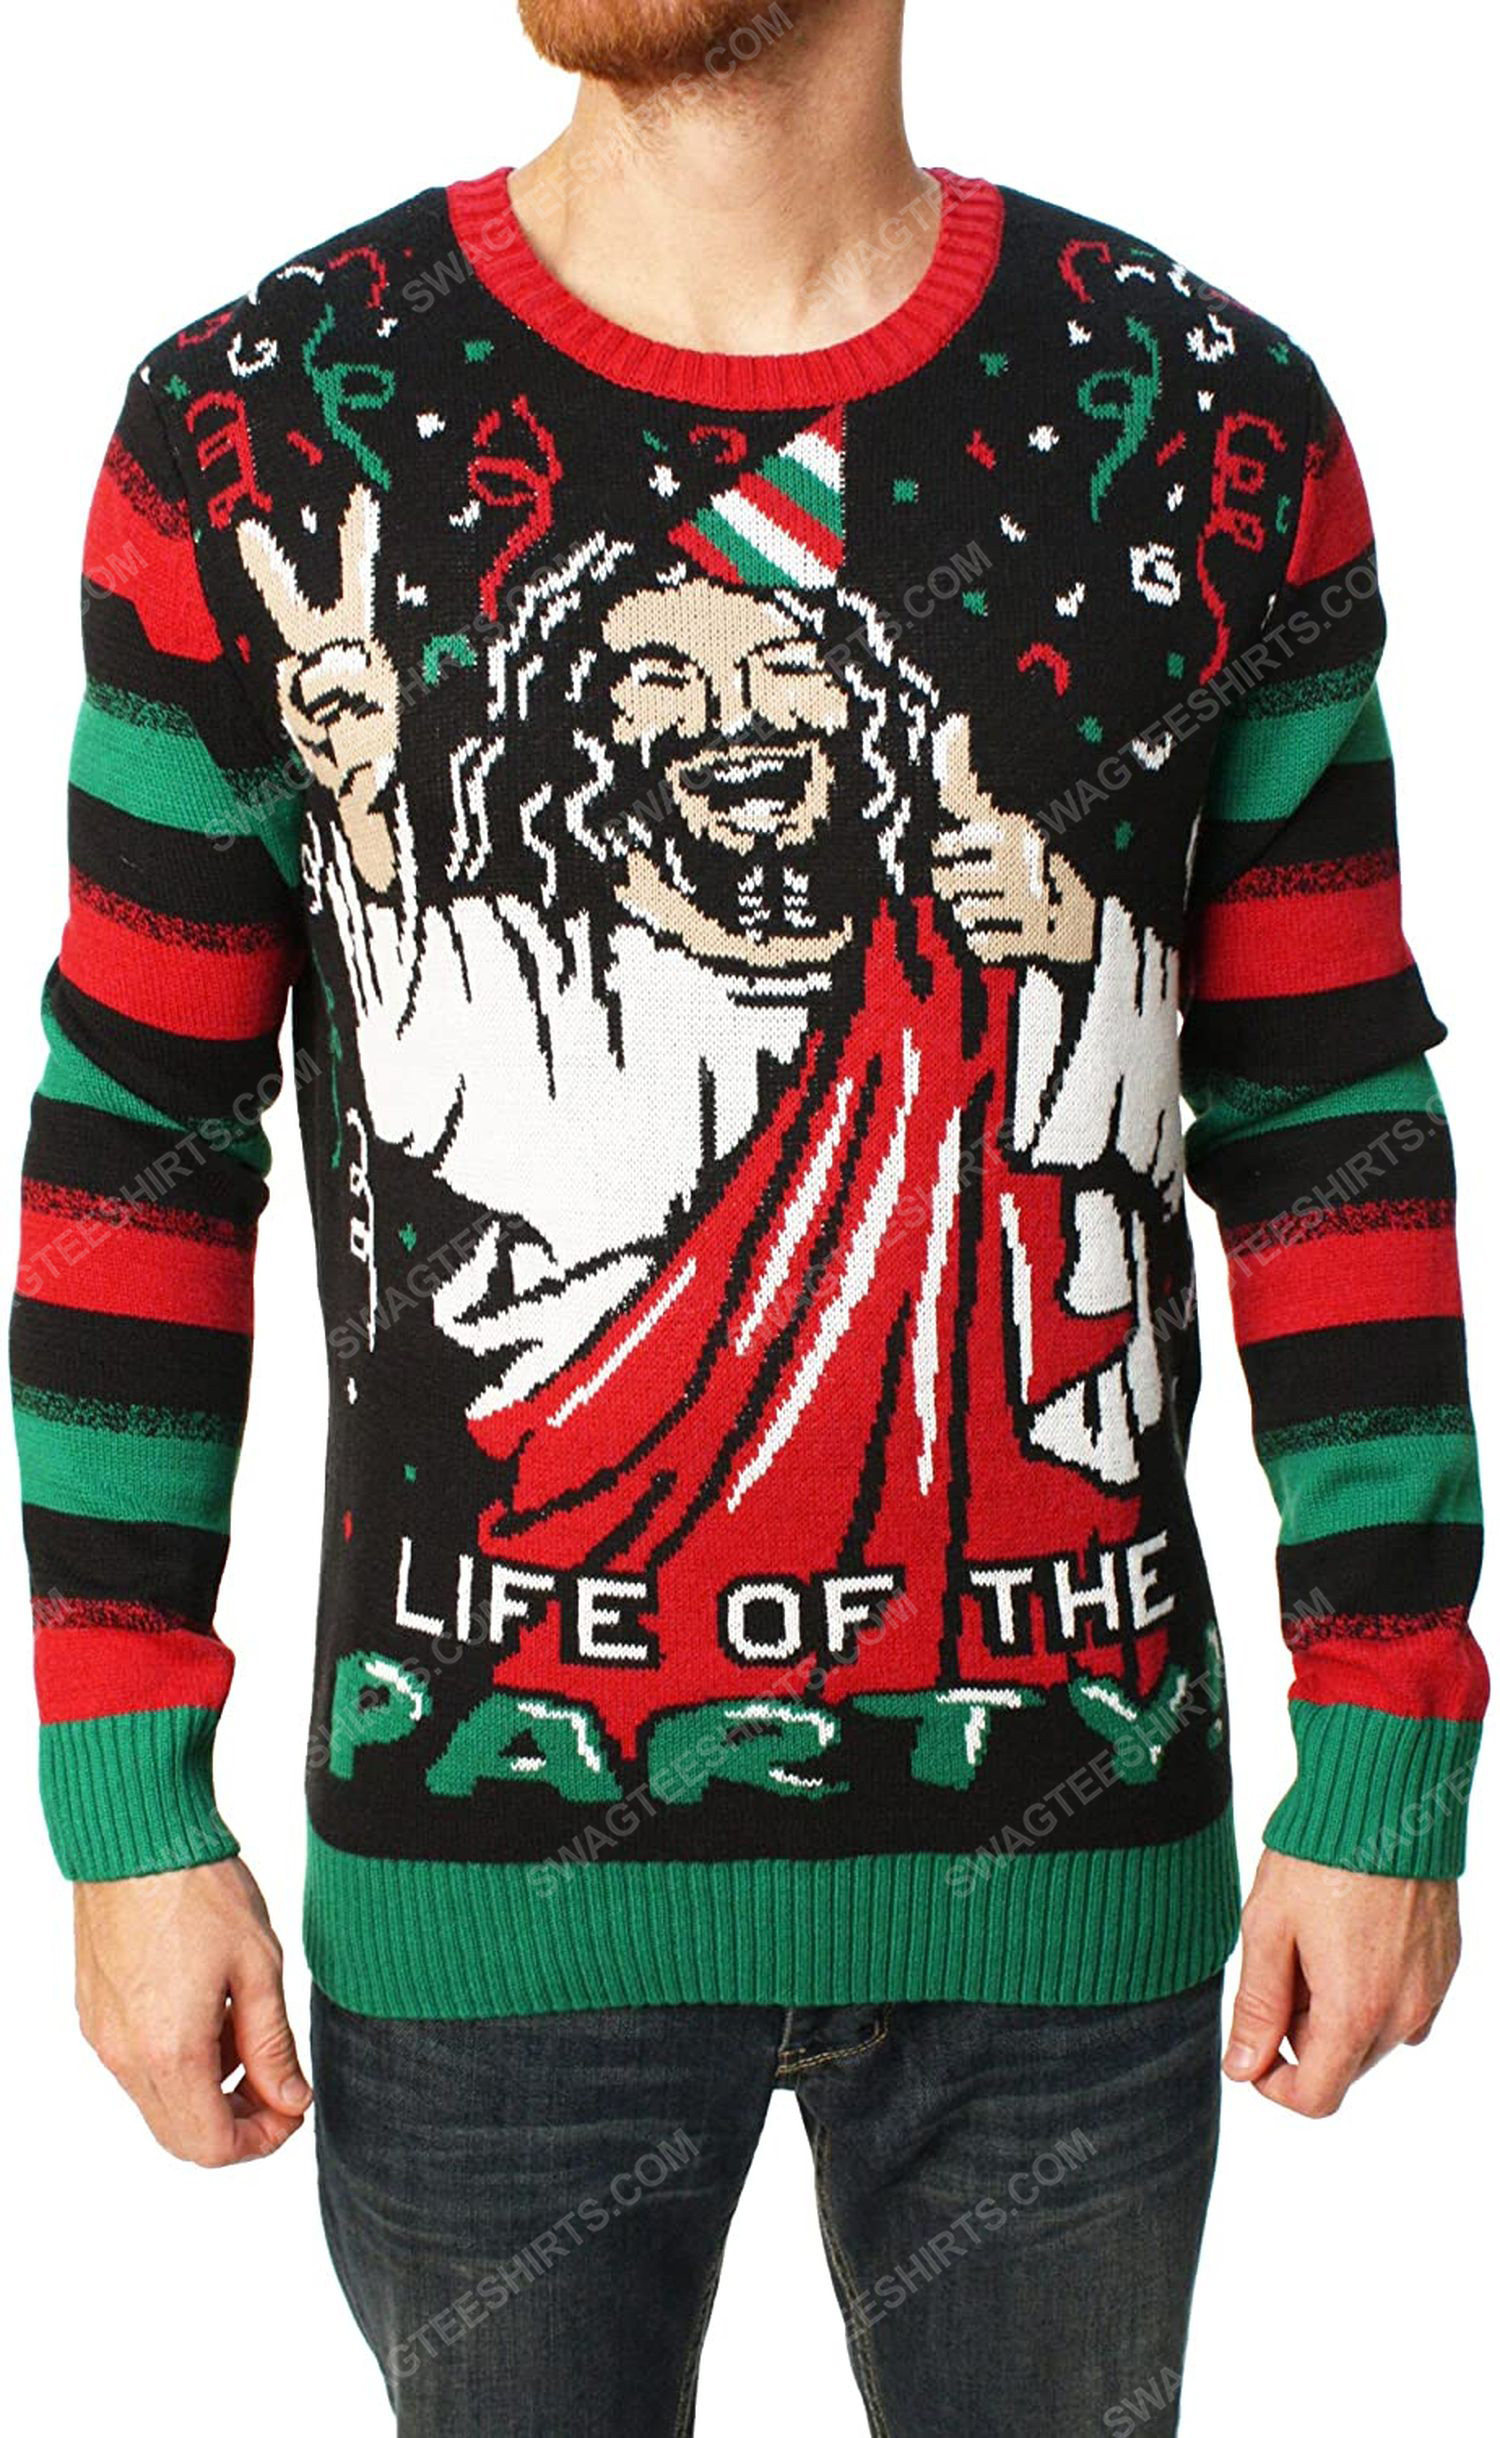 Life of the party full print ugly christmas sweater 2 - Copy (3)